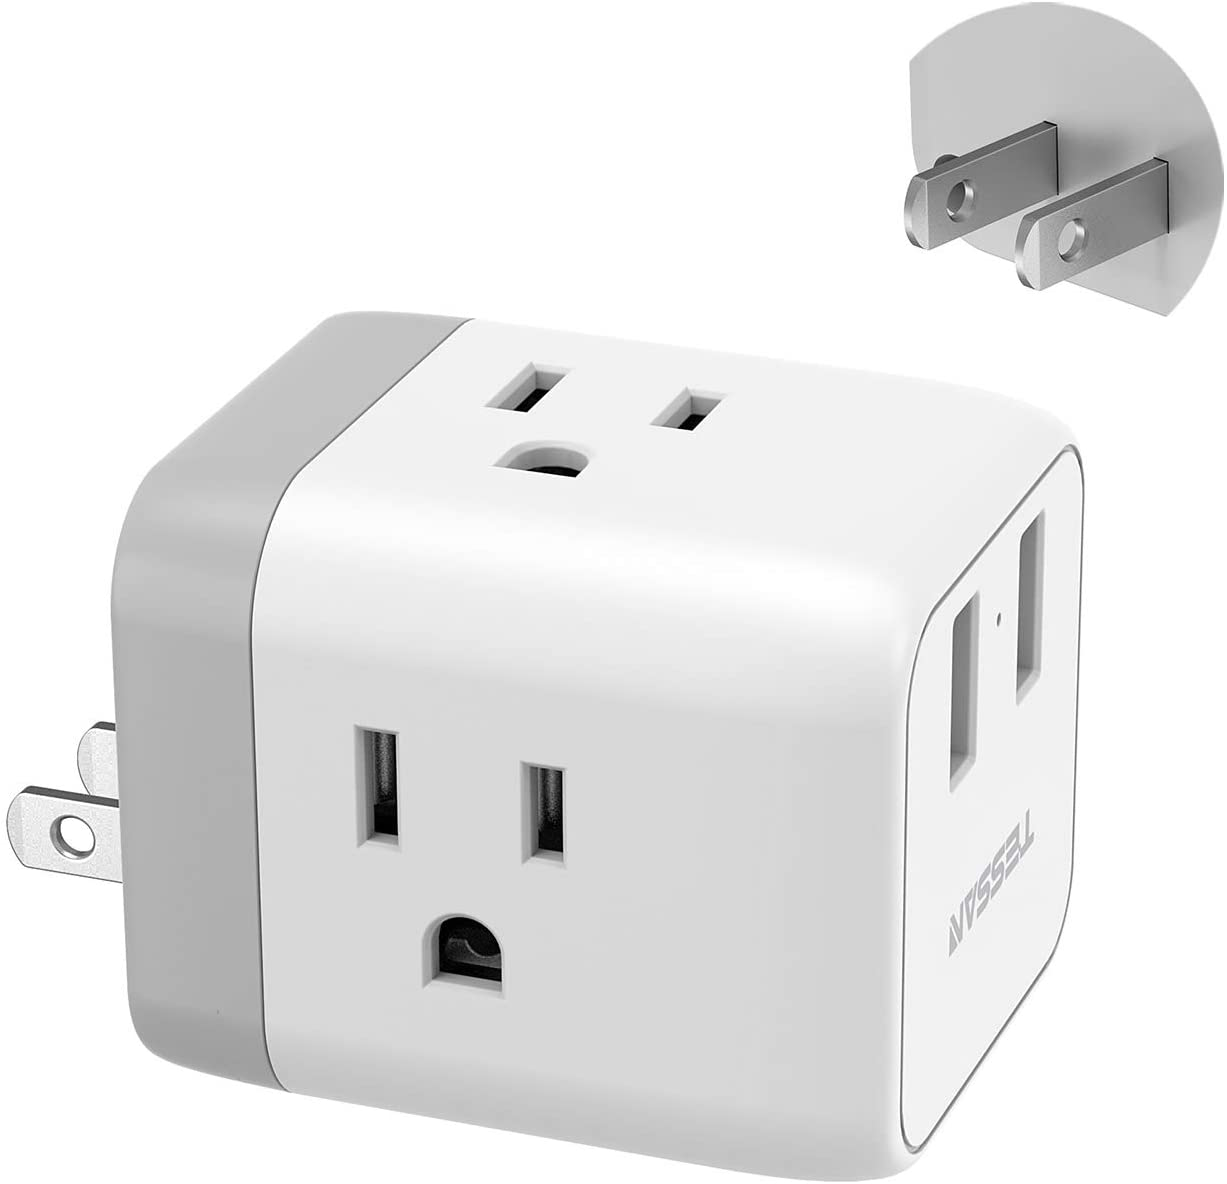 3 Prong To 2 Prong Adapter Tessan 3 Outlets With 2 Usb Wall Charger Multi Plug Outlet Extender Splitter Travel Power Adapter Plug For Us To Japan Canada Mexico Philippines Type A Amazon Com